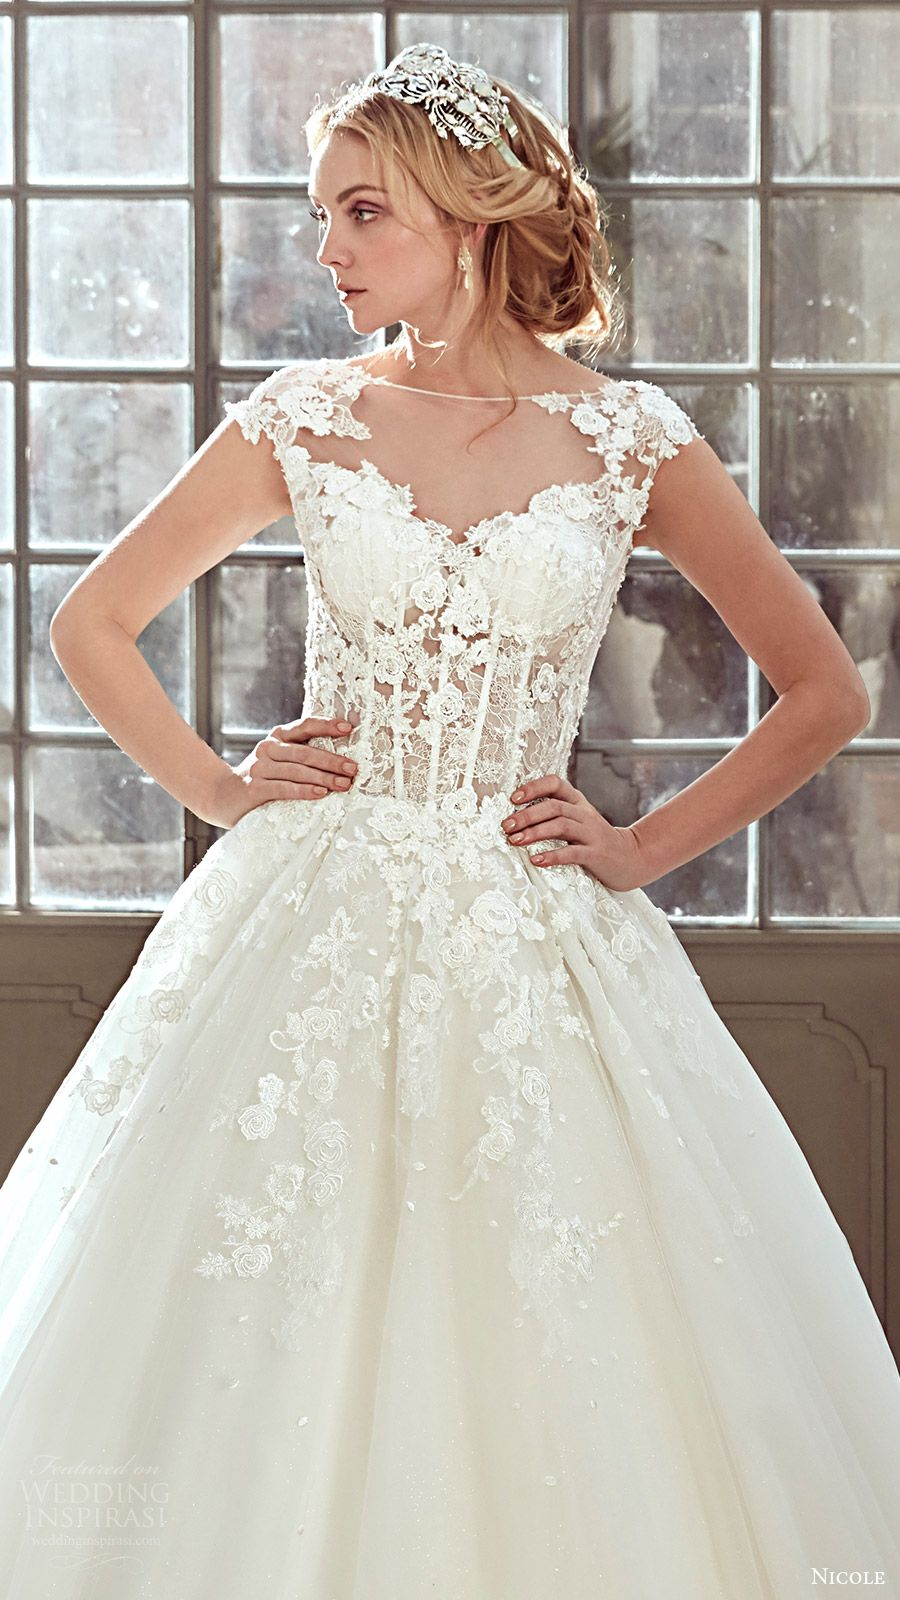 Elite wedding dresses  Nicole  Wedding Dresses  Wedding Sleeve and Aesthetics